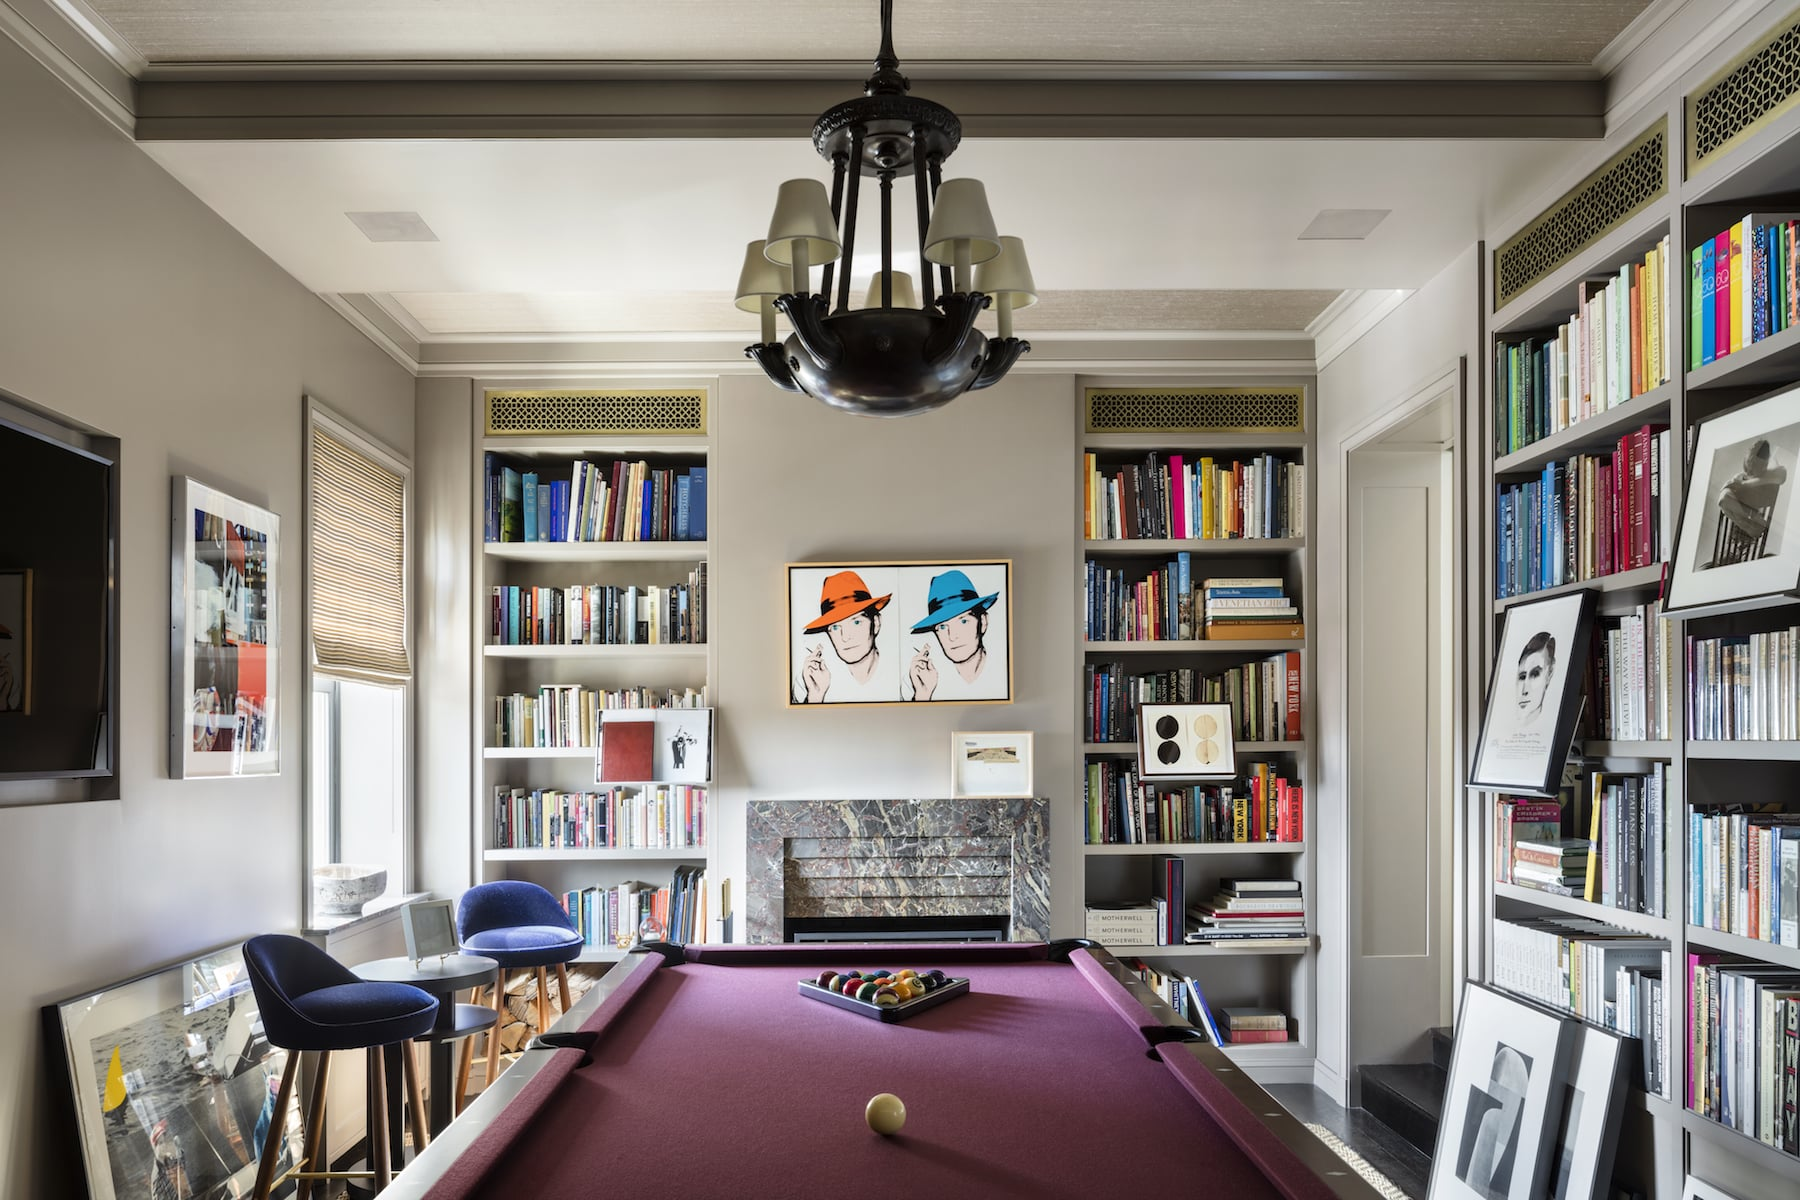 This billiards room designed by Thad Hayes features a Warhol double portrait of Truman Capote over the fireplace.